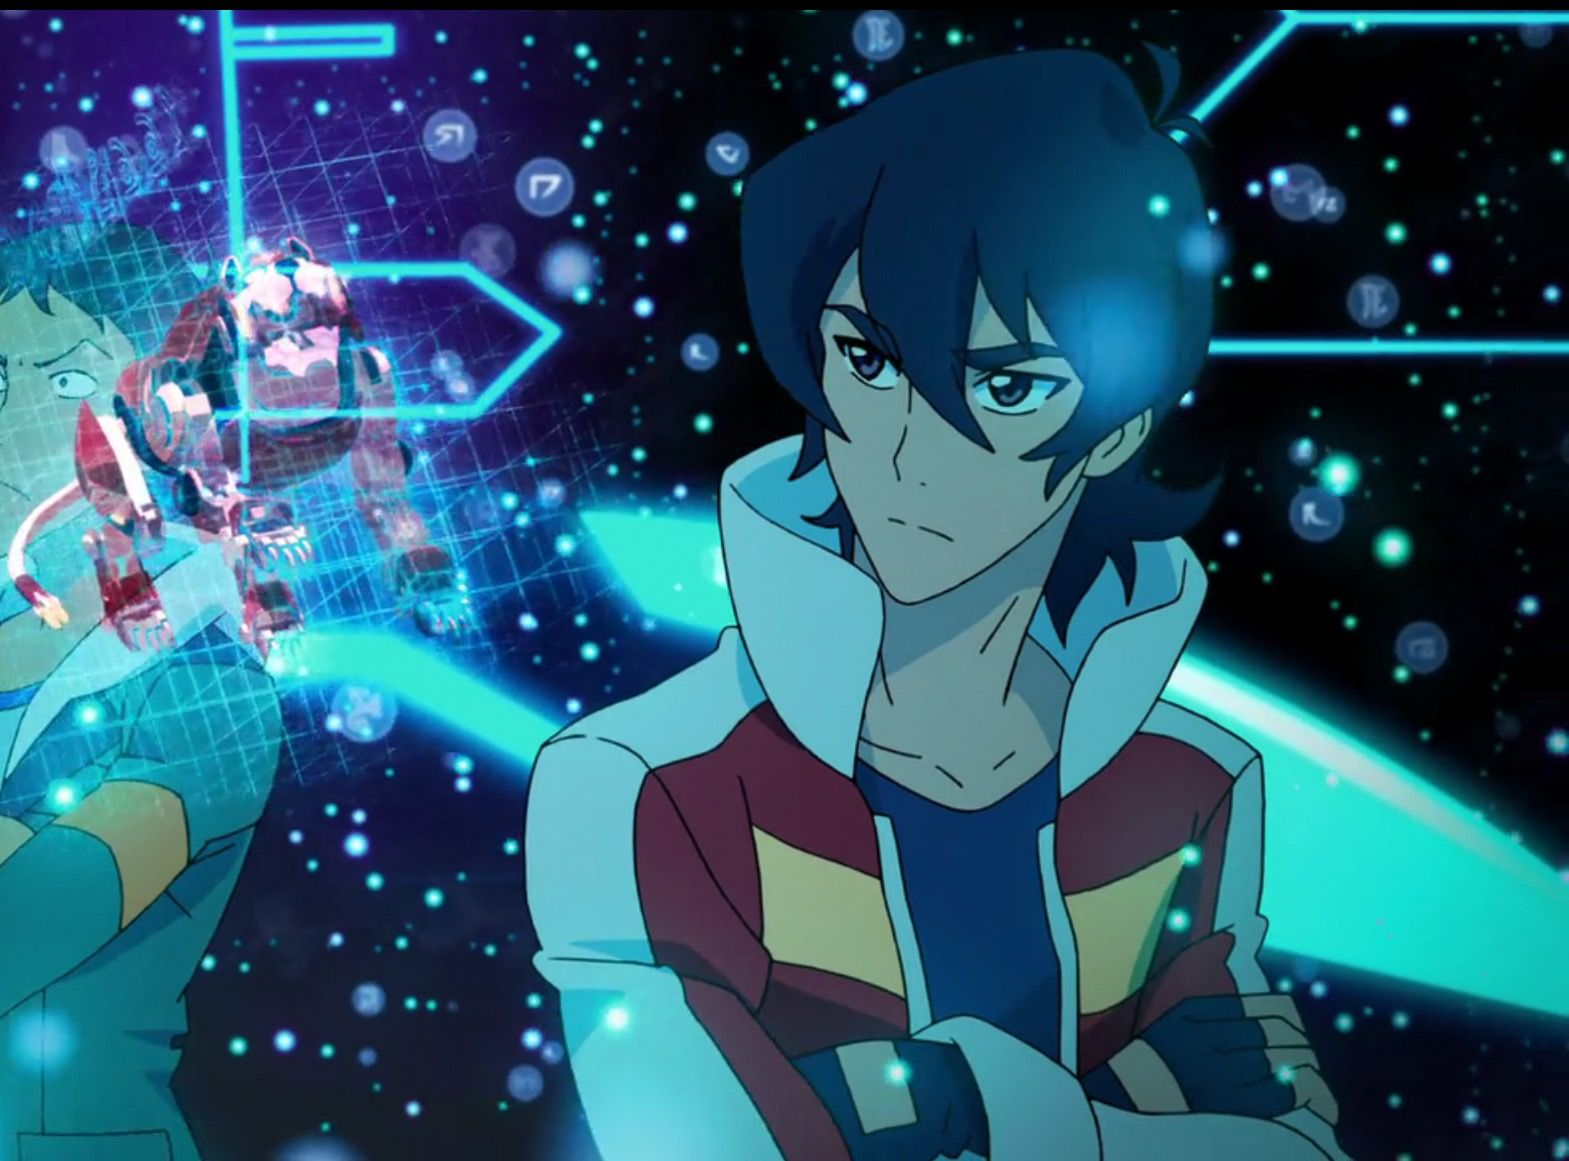 Keith chosen to be the Paladin of the Red Lion from